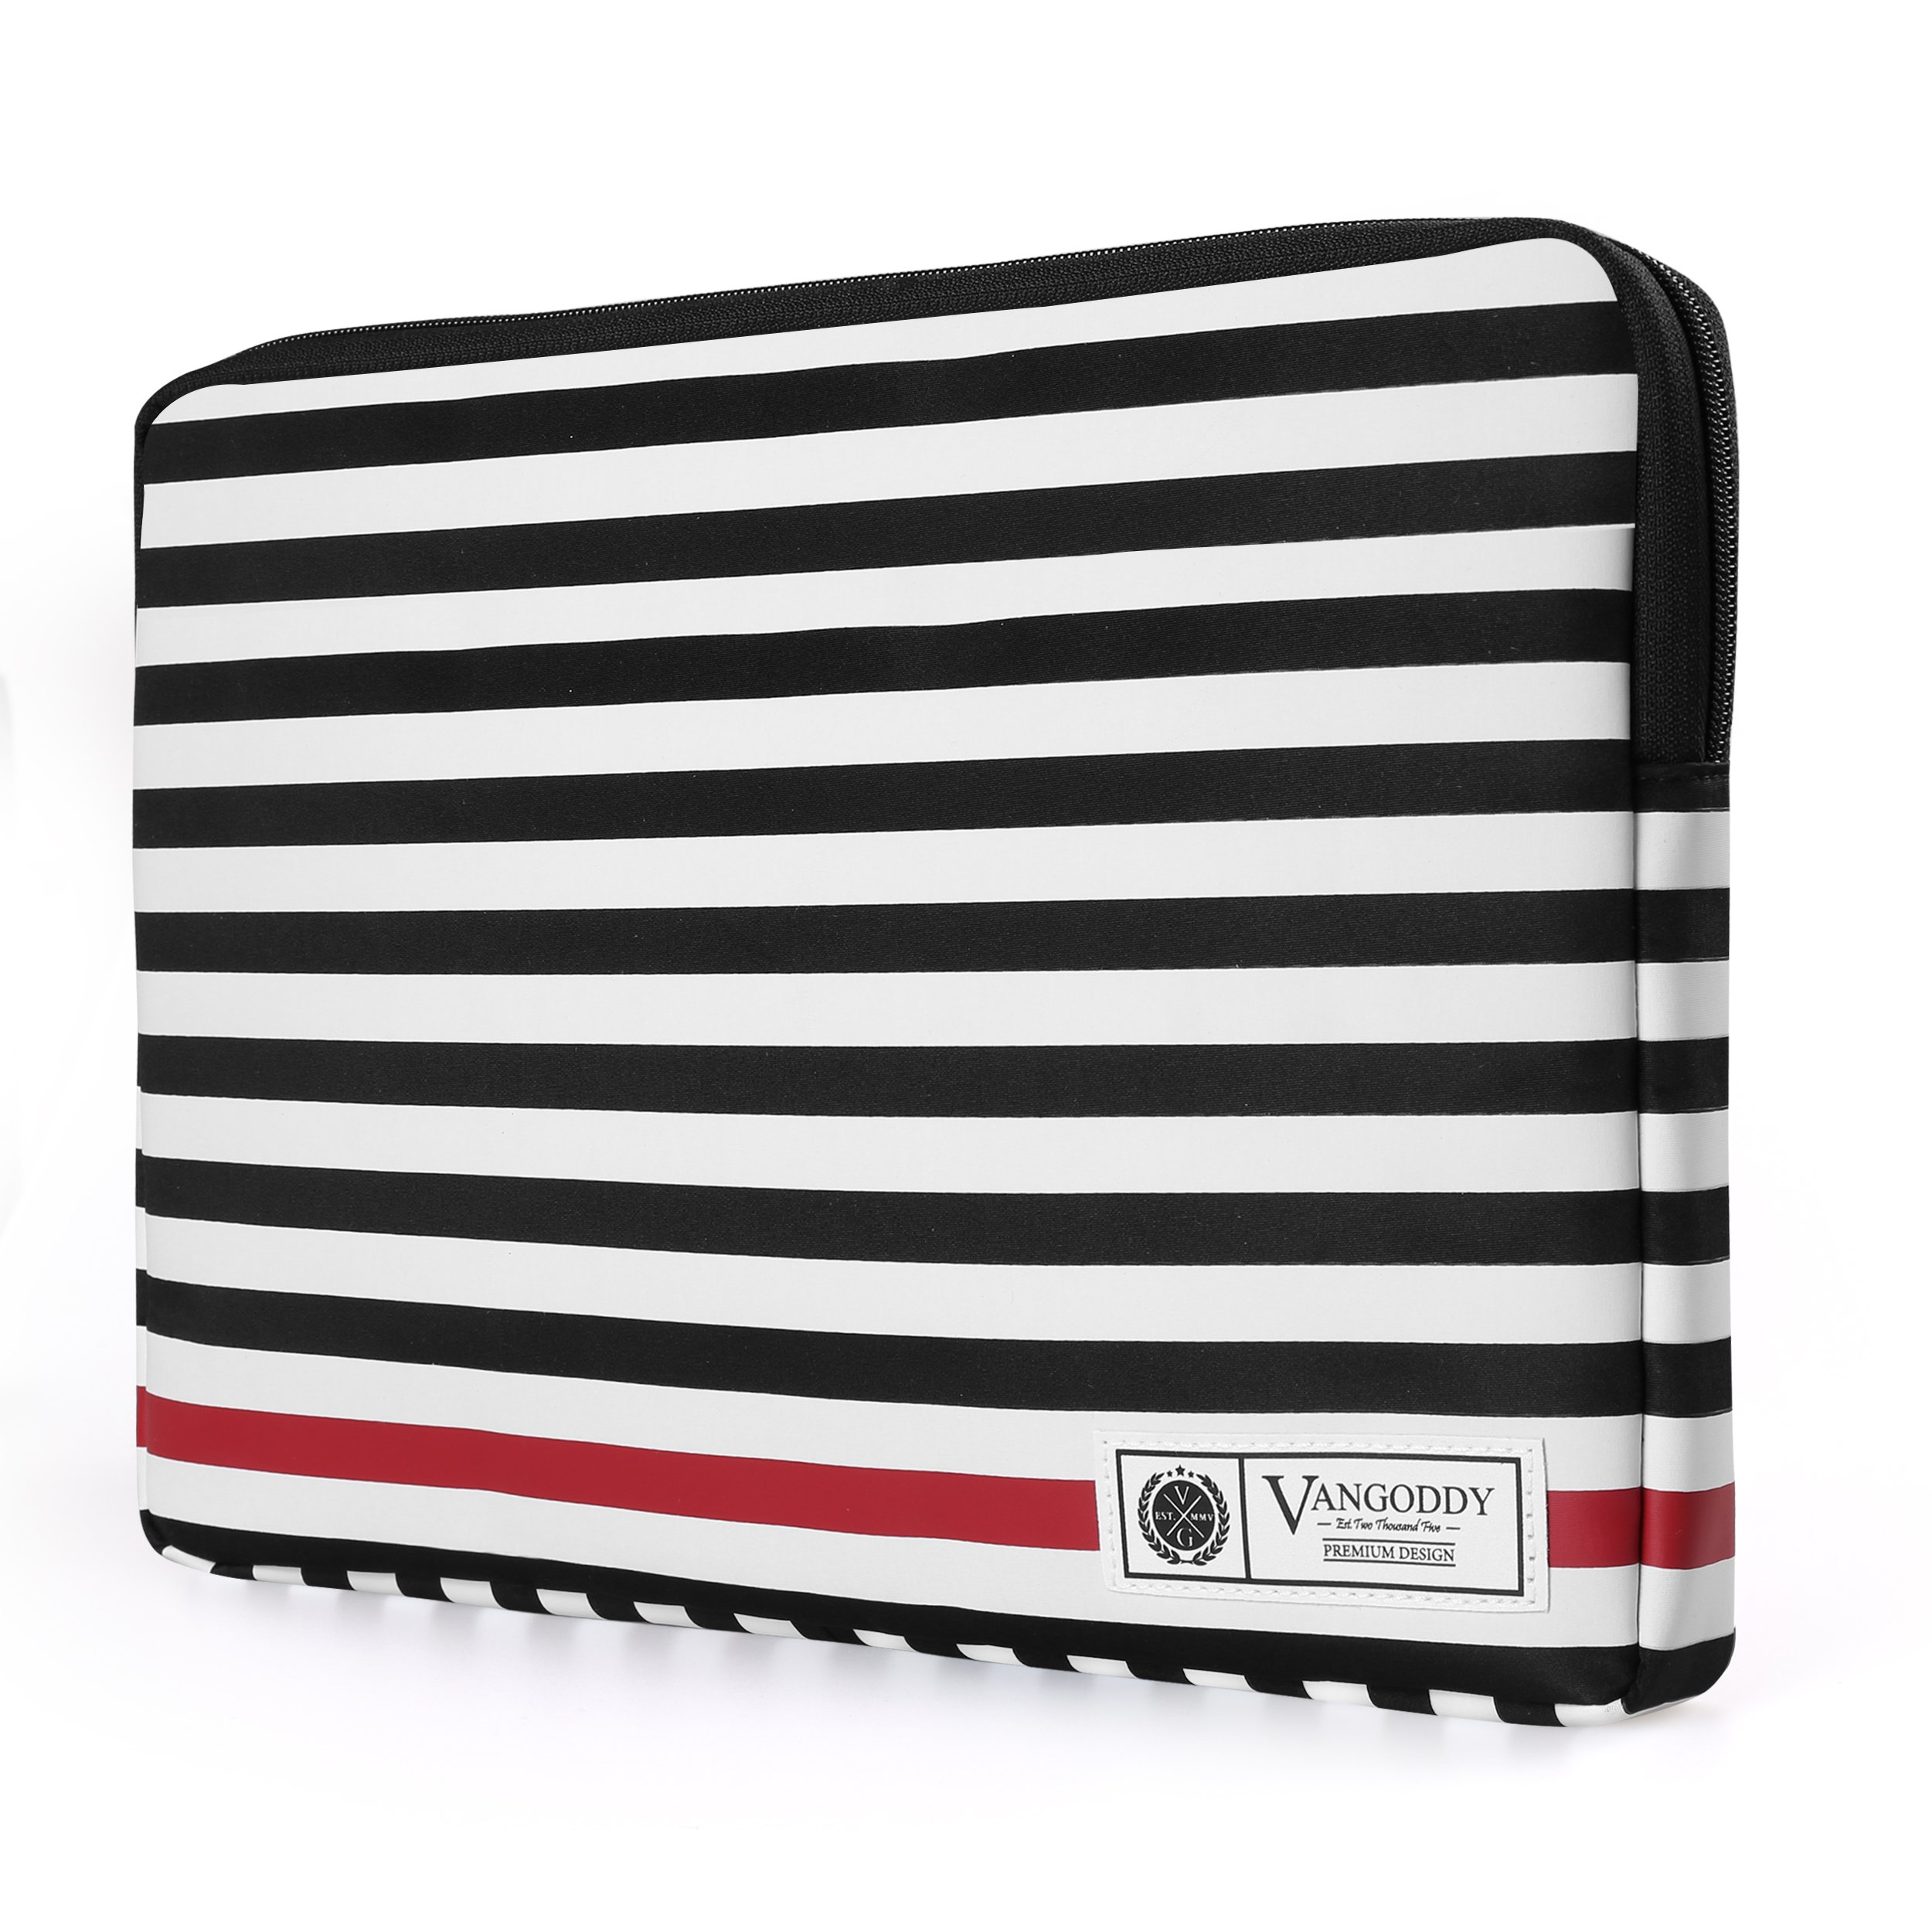 Luxe 13.3'' Laptop Tablet Sleeve Vegan Leather B/W Stripe Pattern Design for Microsoft Surface Laptop 13.5''/Suface Pro 13.5'' Series/Surface Book 13.5'' Series